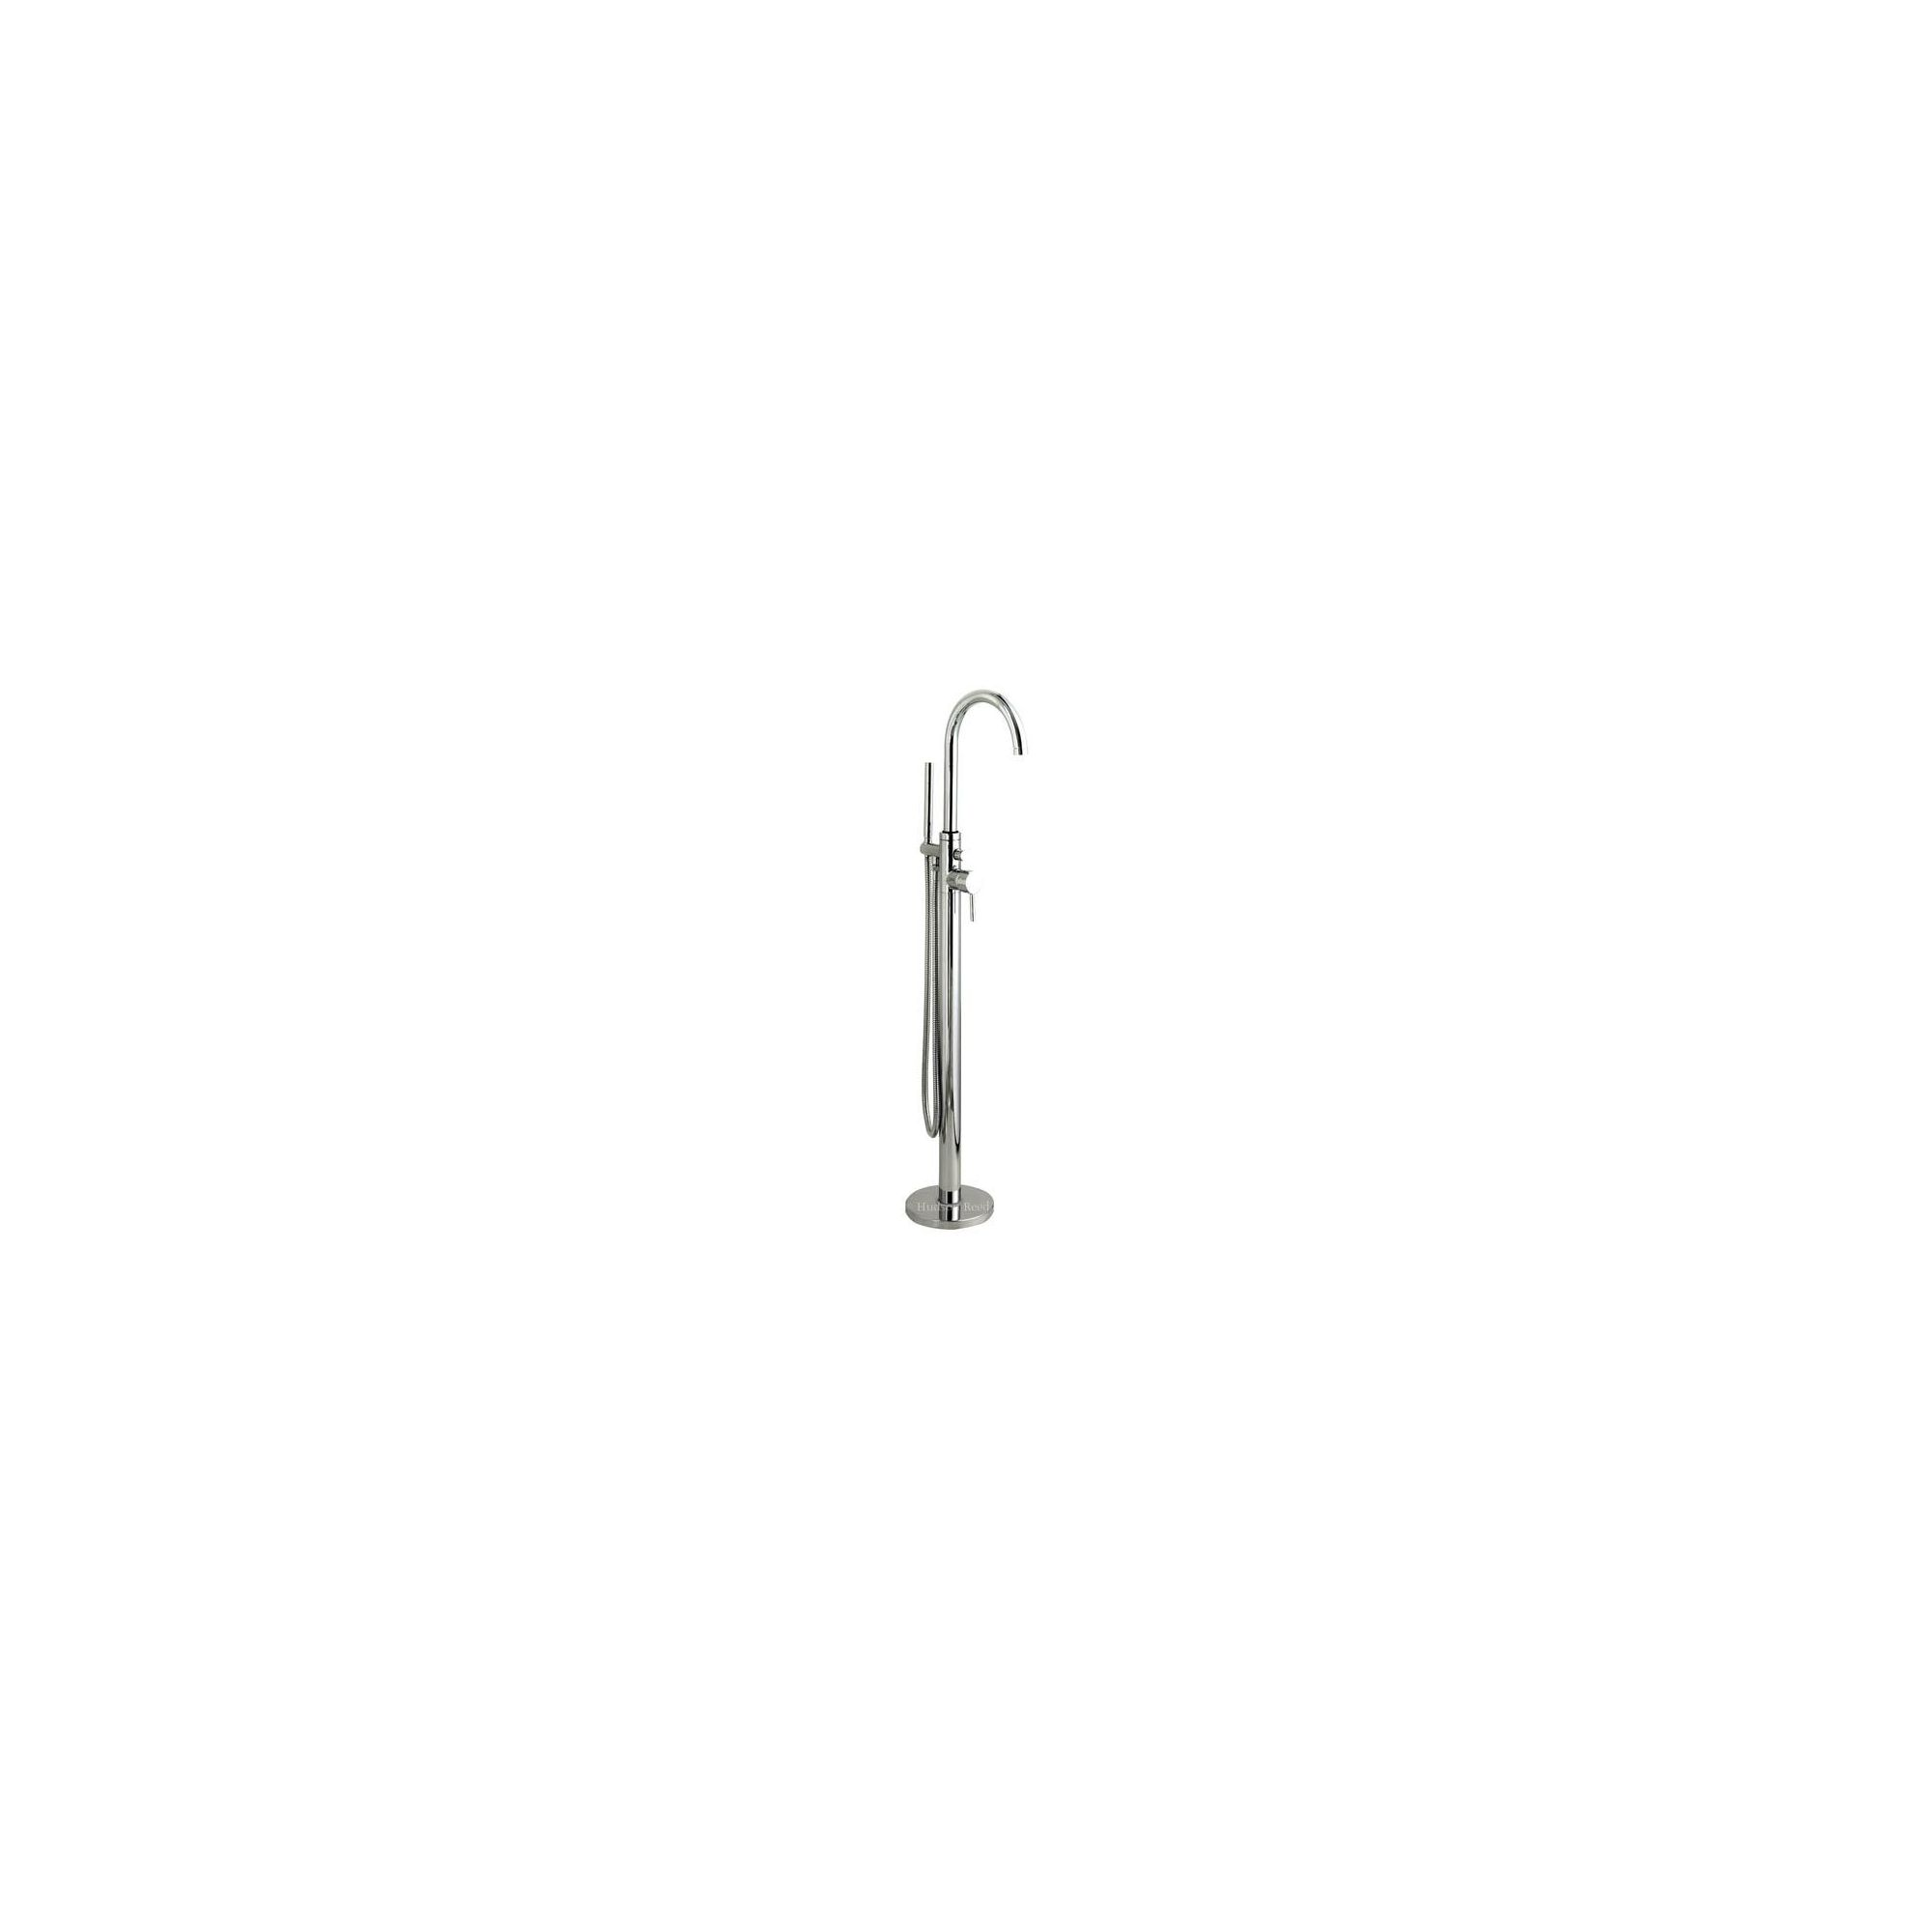 Hudson Reed Tec Single Lever Elite Single Lever Mono Bath Shower Mixer Tap at Tesco Direct